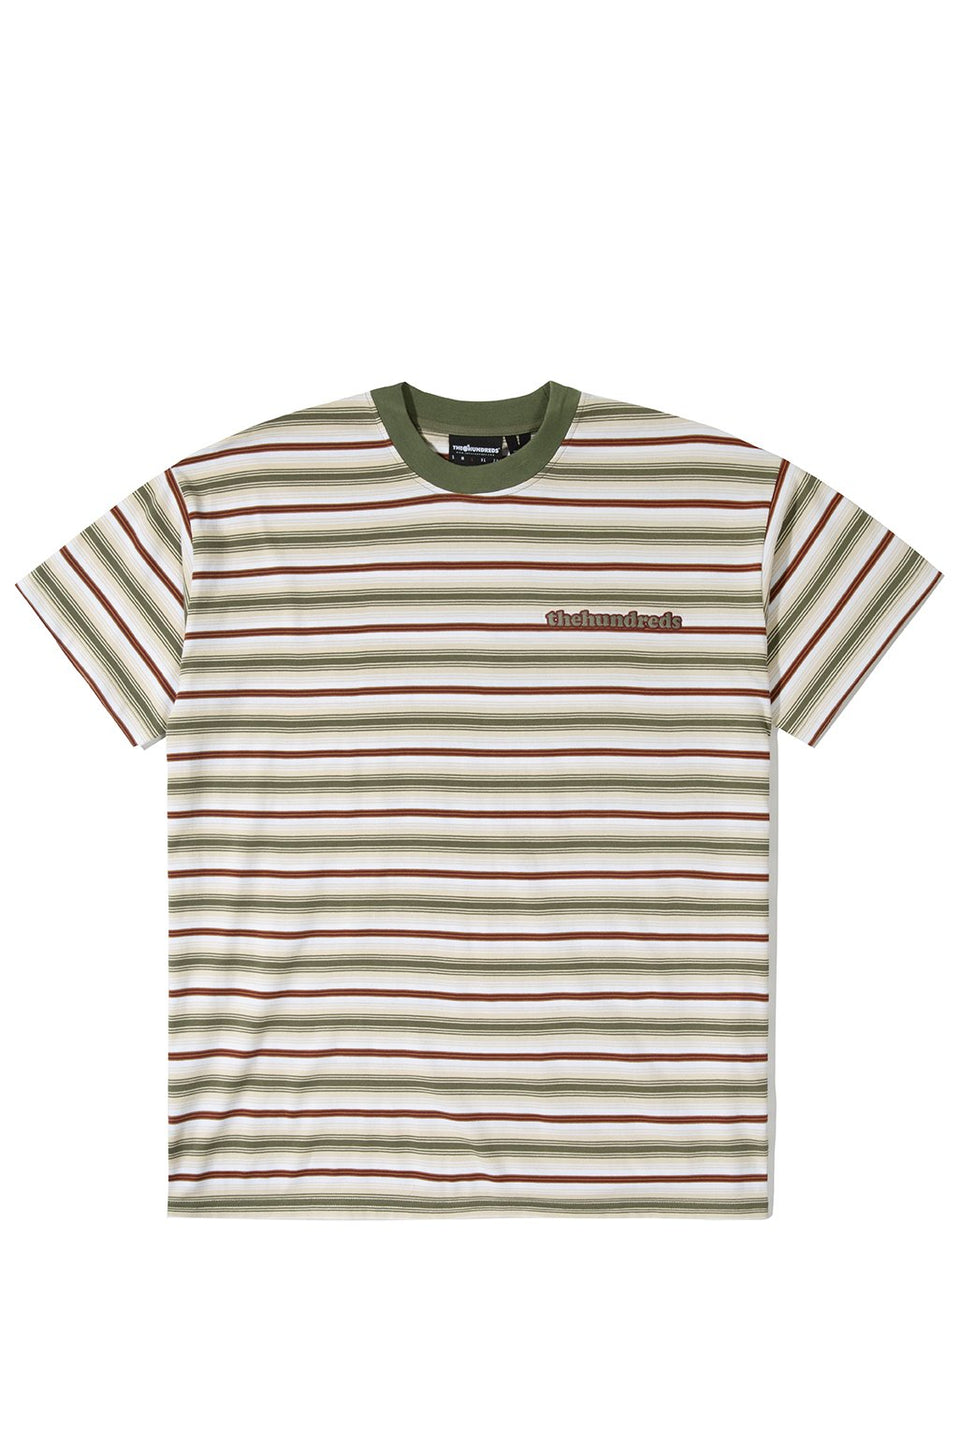 The Hundreds Rowan T-Shirt TOPS White